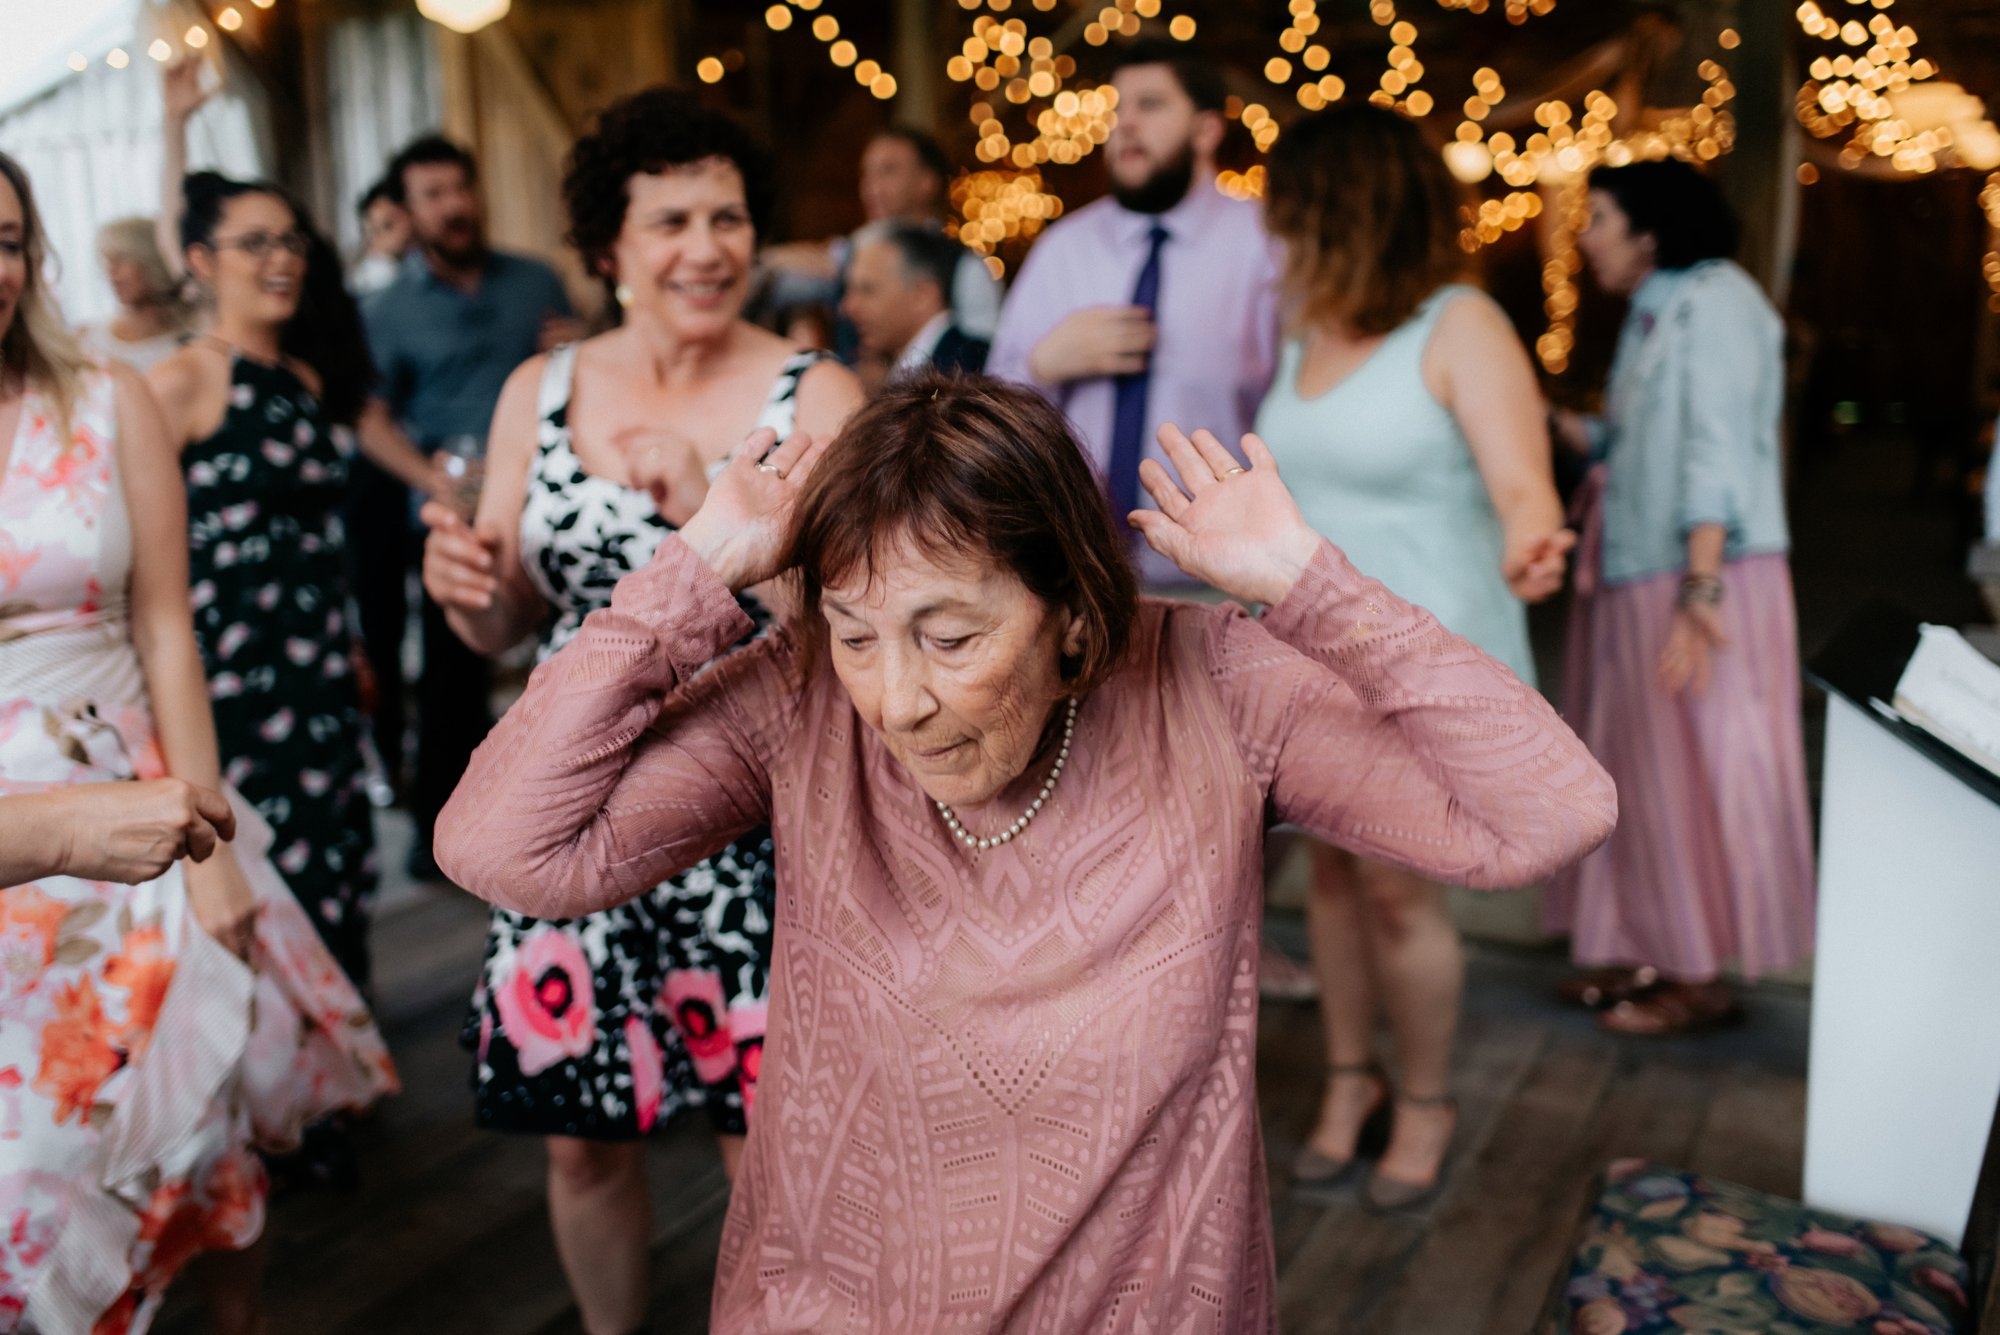 Fiddle Lake Farm Philadelphia Pennsylvania Misty Rustic Wedding with Lush Florals Grandma Flower Girl Dancing